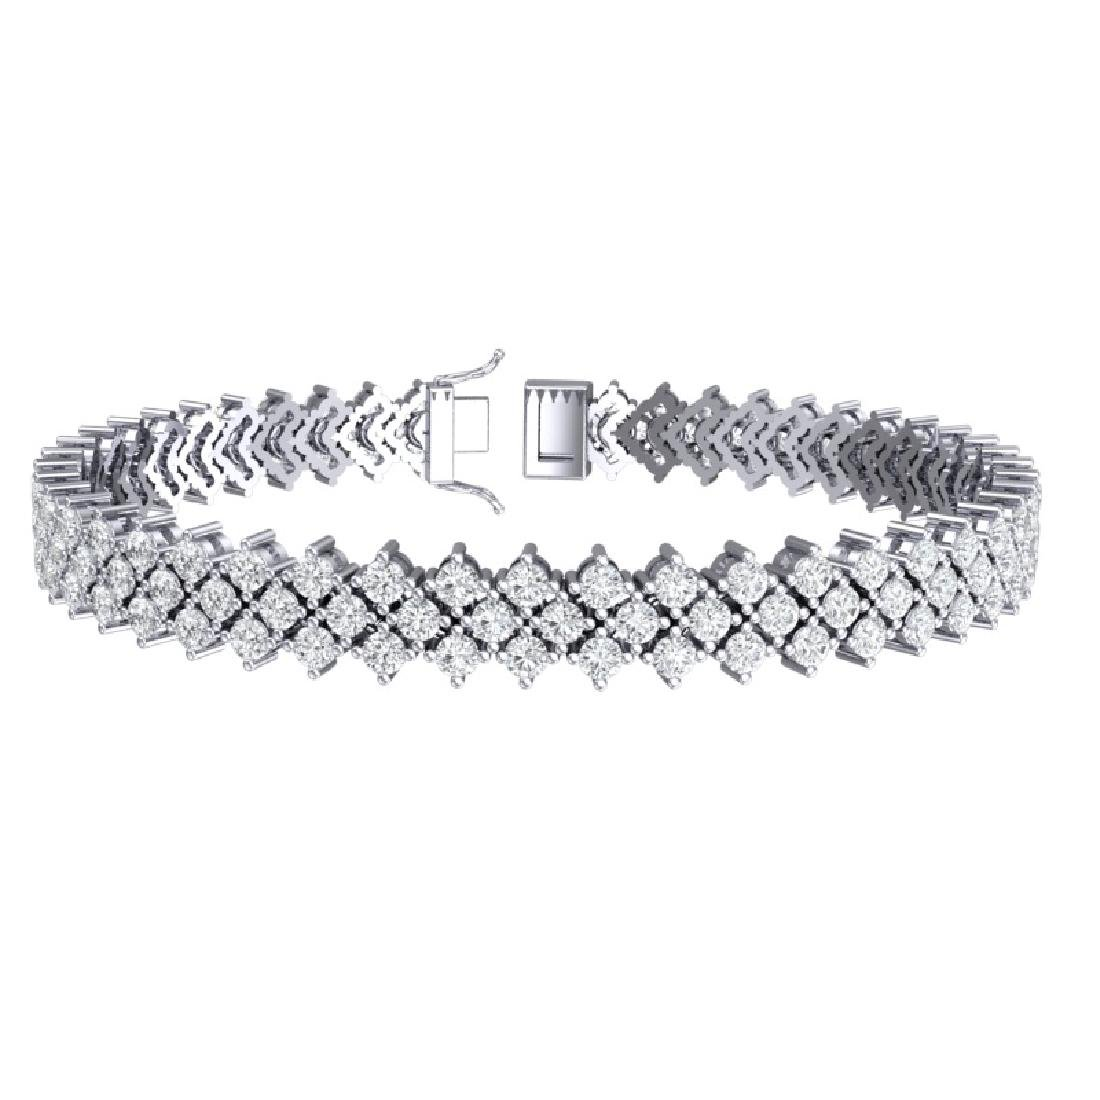 10 CTW Certified SI/I Diamond Bracelet 18K White Gold - 3